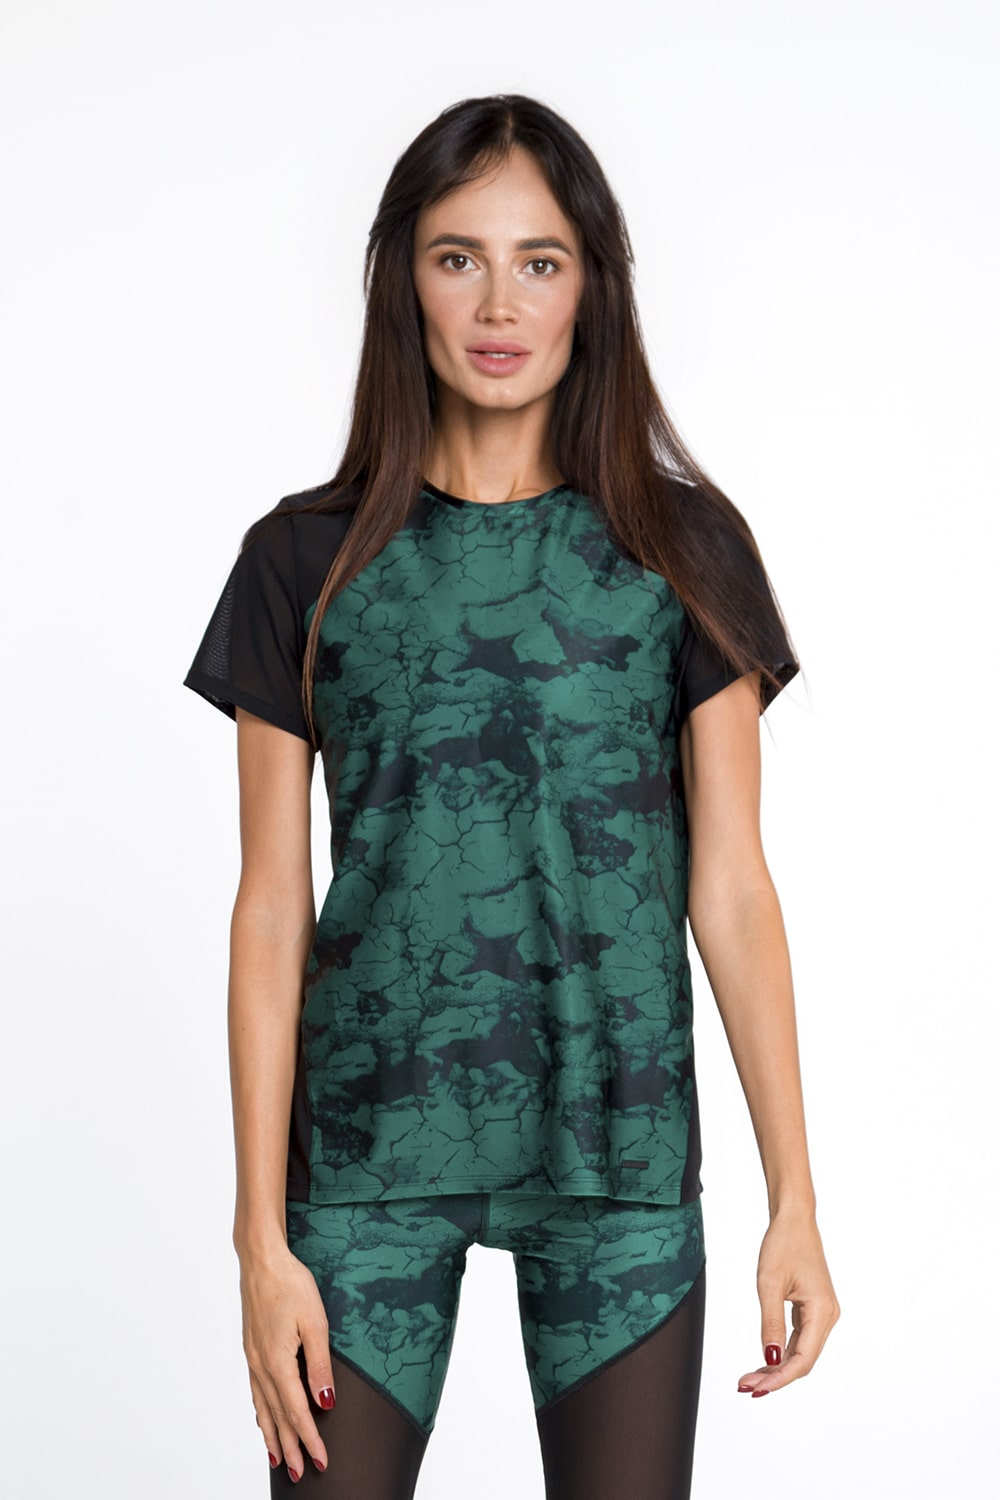 MARBLE EMERALD T-SHIRT - Designed for Fitness